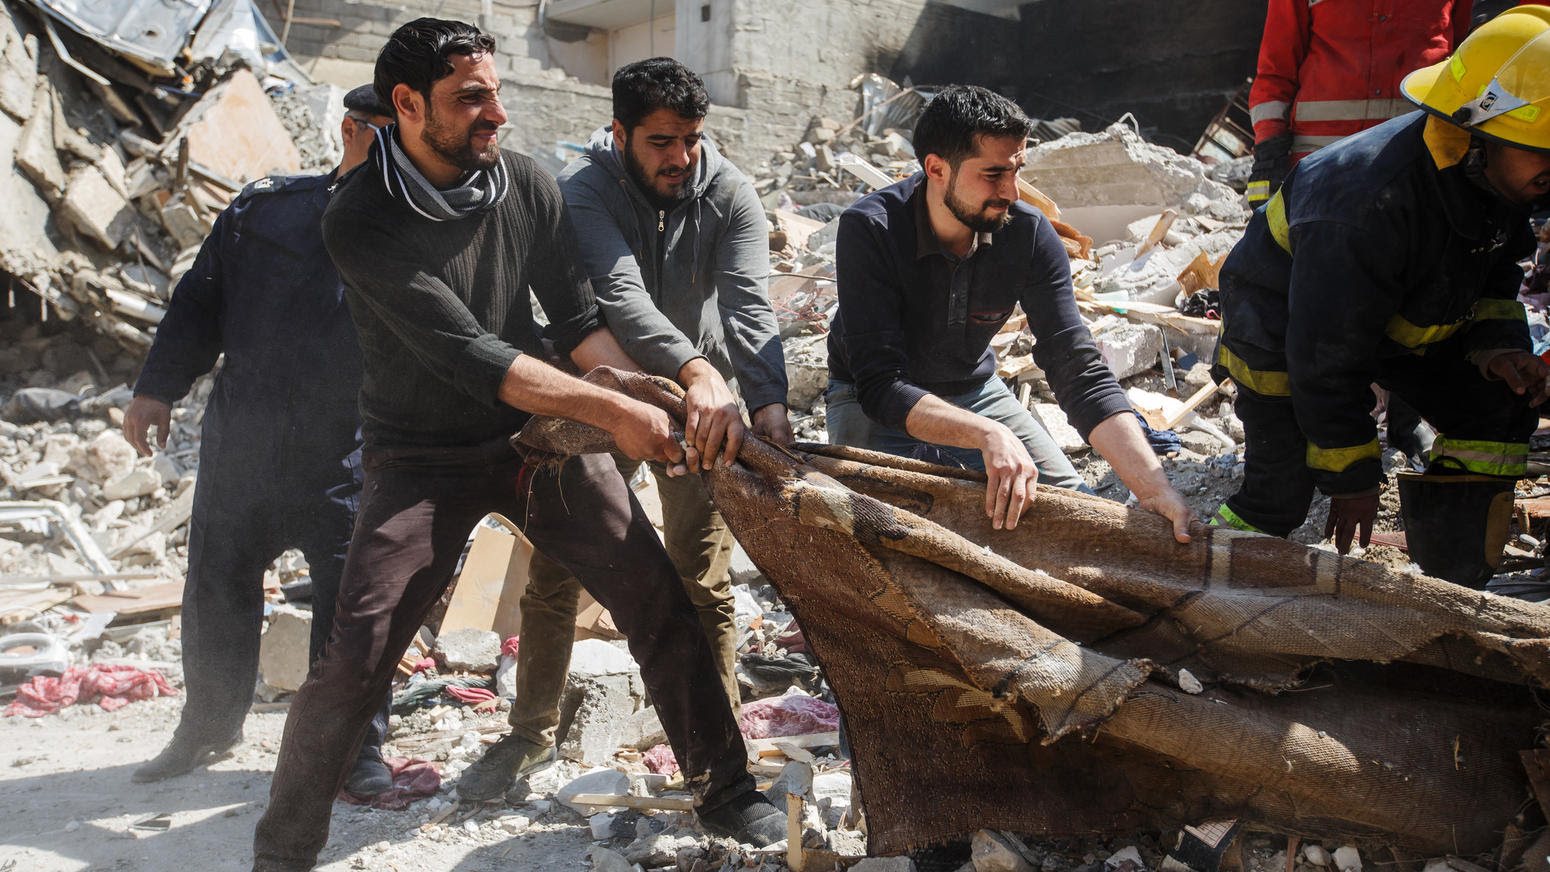 Deadly airstrike in Mosul kills scores of civilians